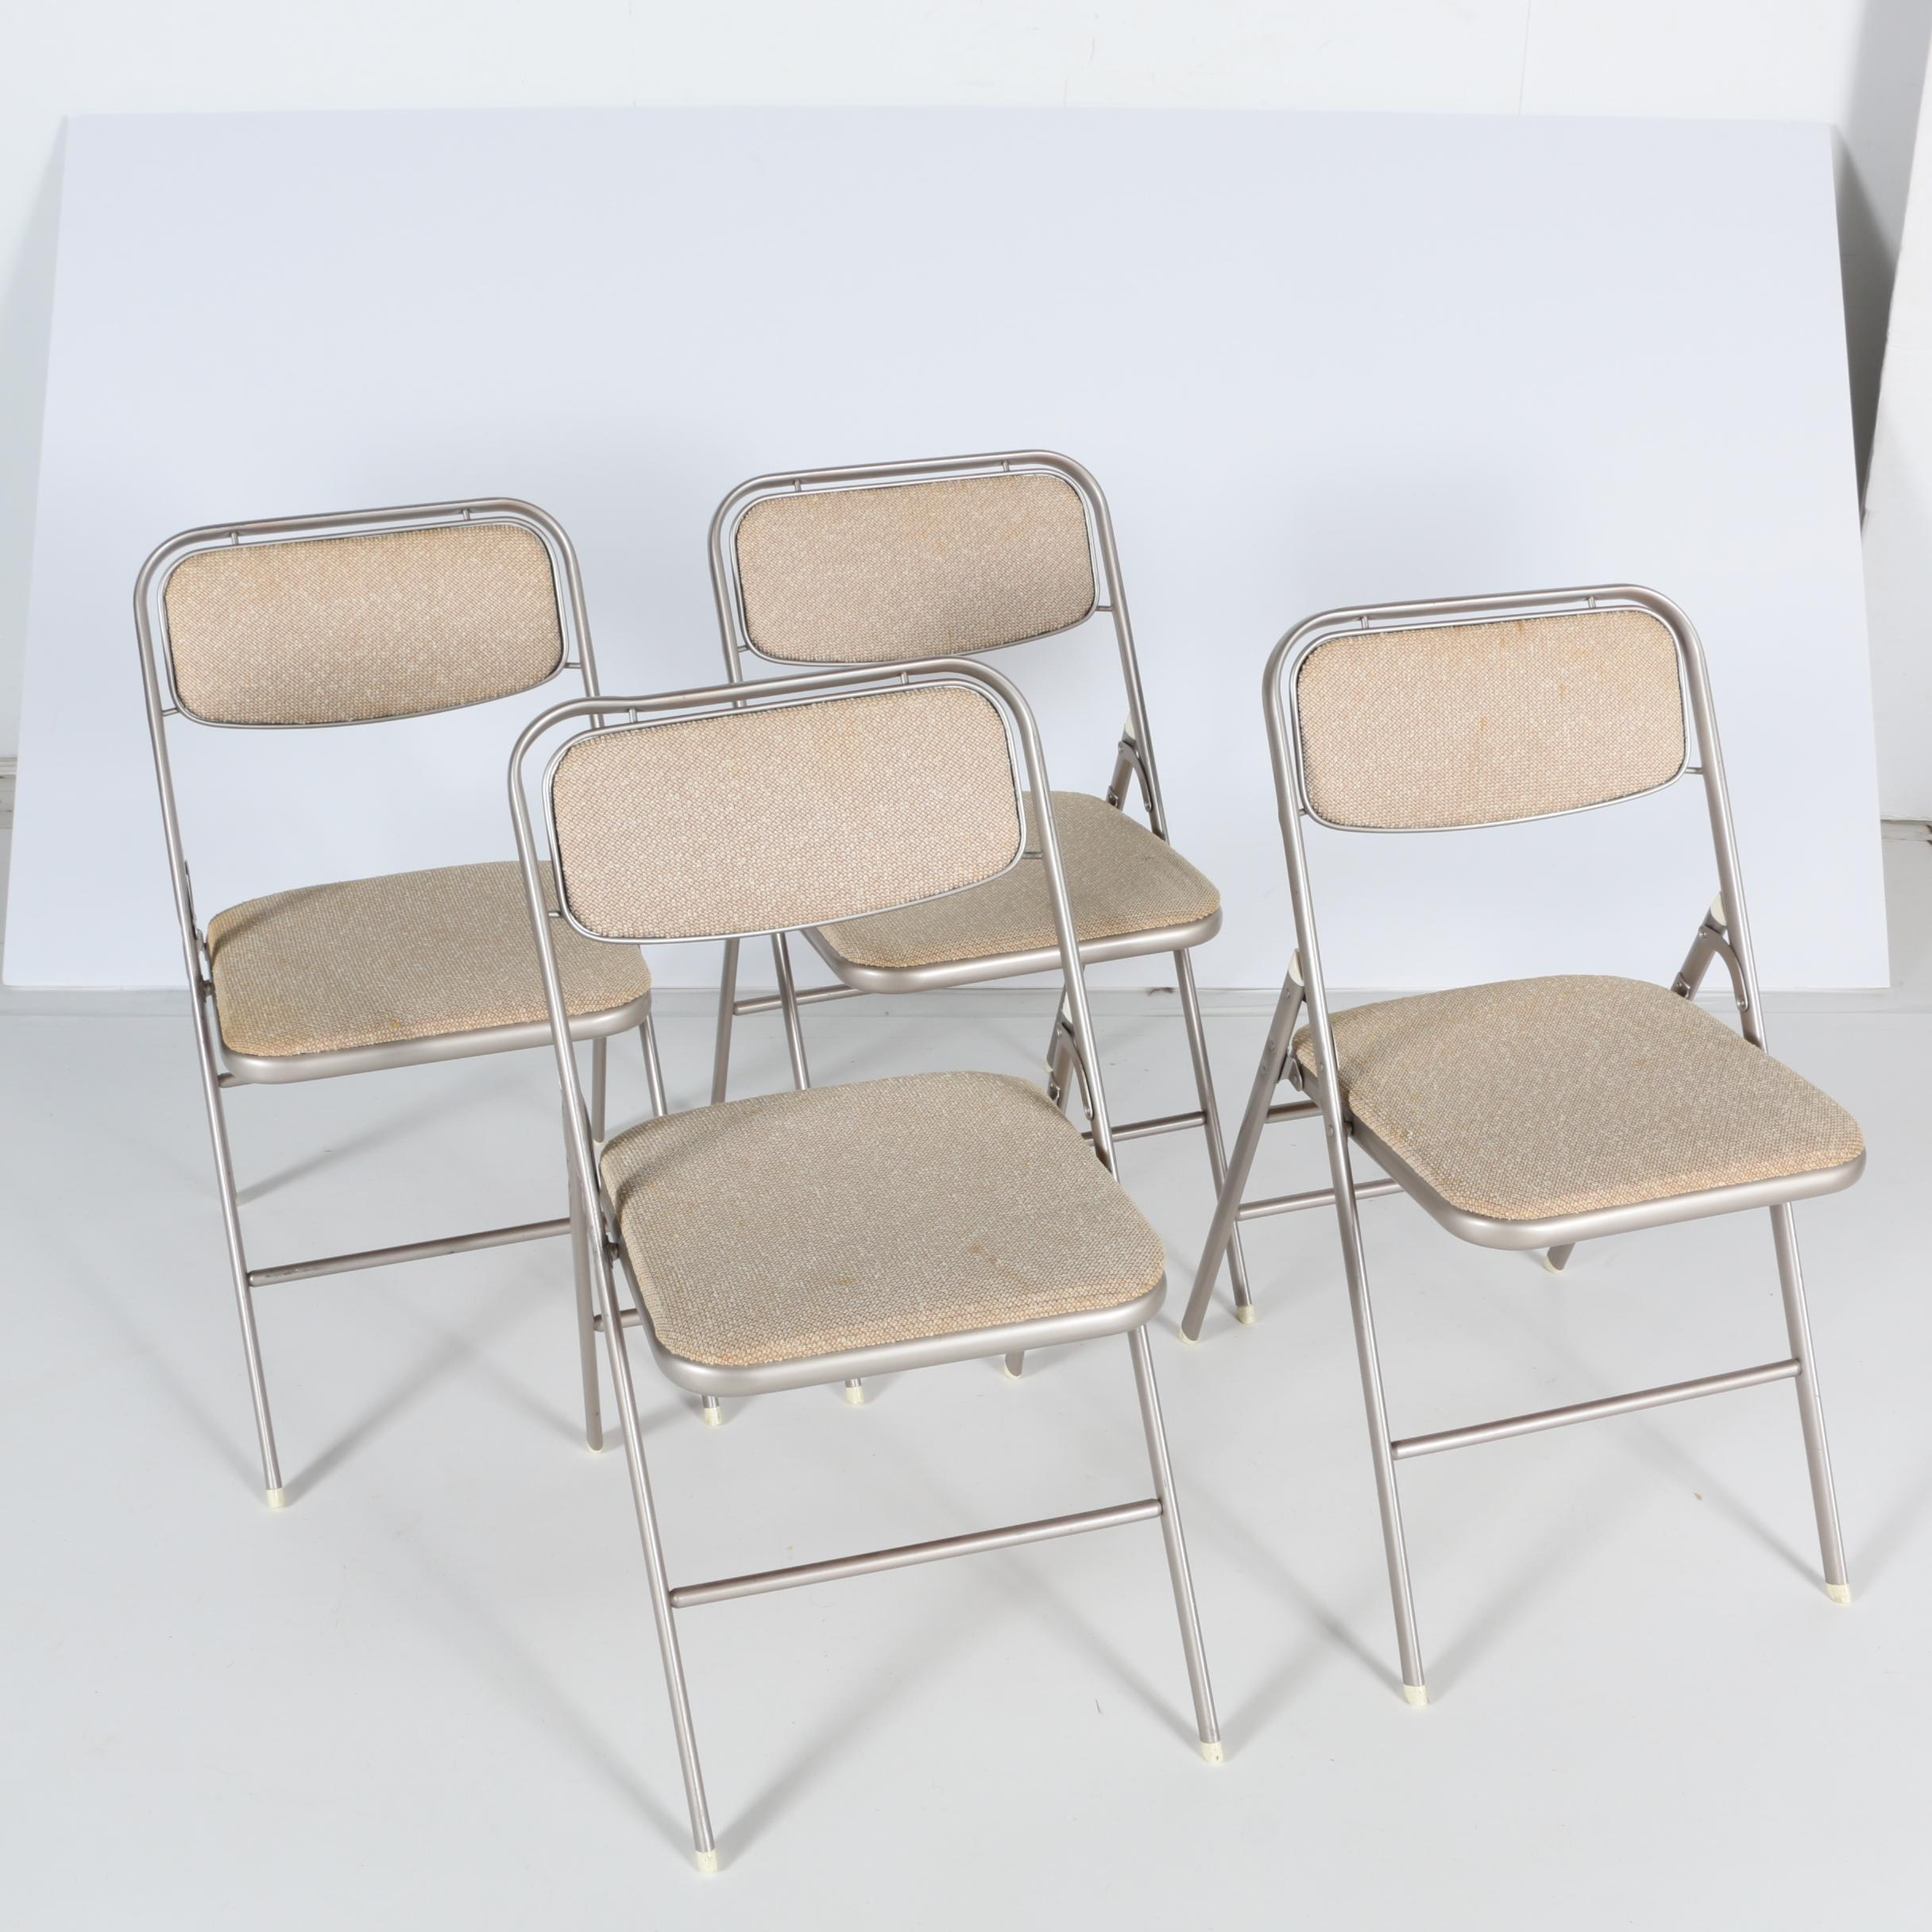 Four Samsonite Folding Chairs